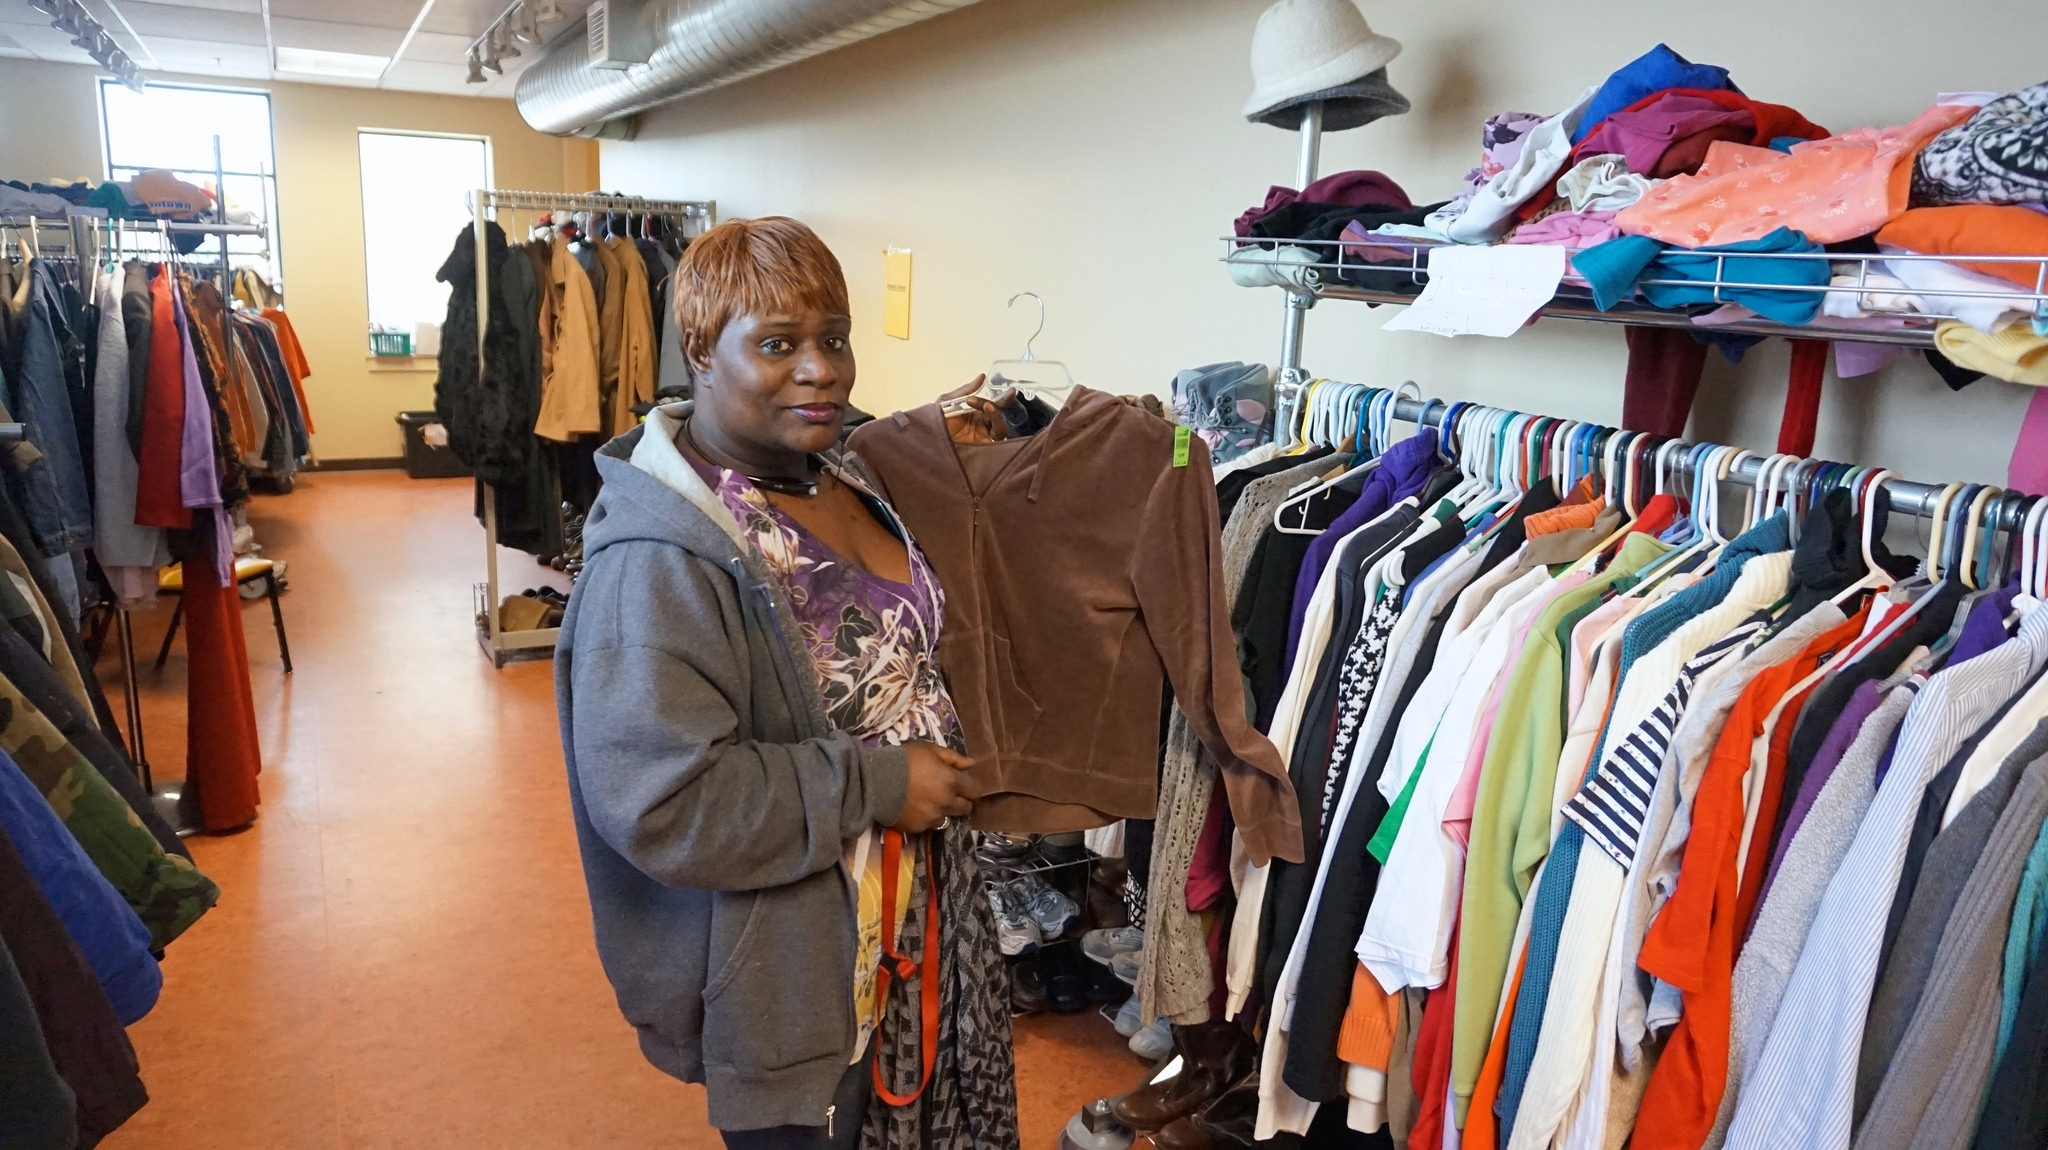 Clothing donation centers